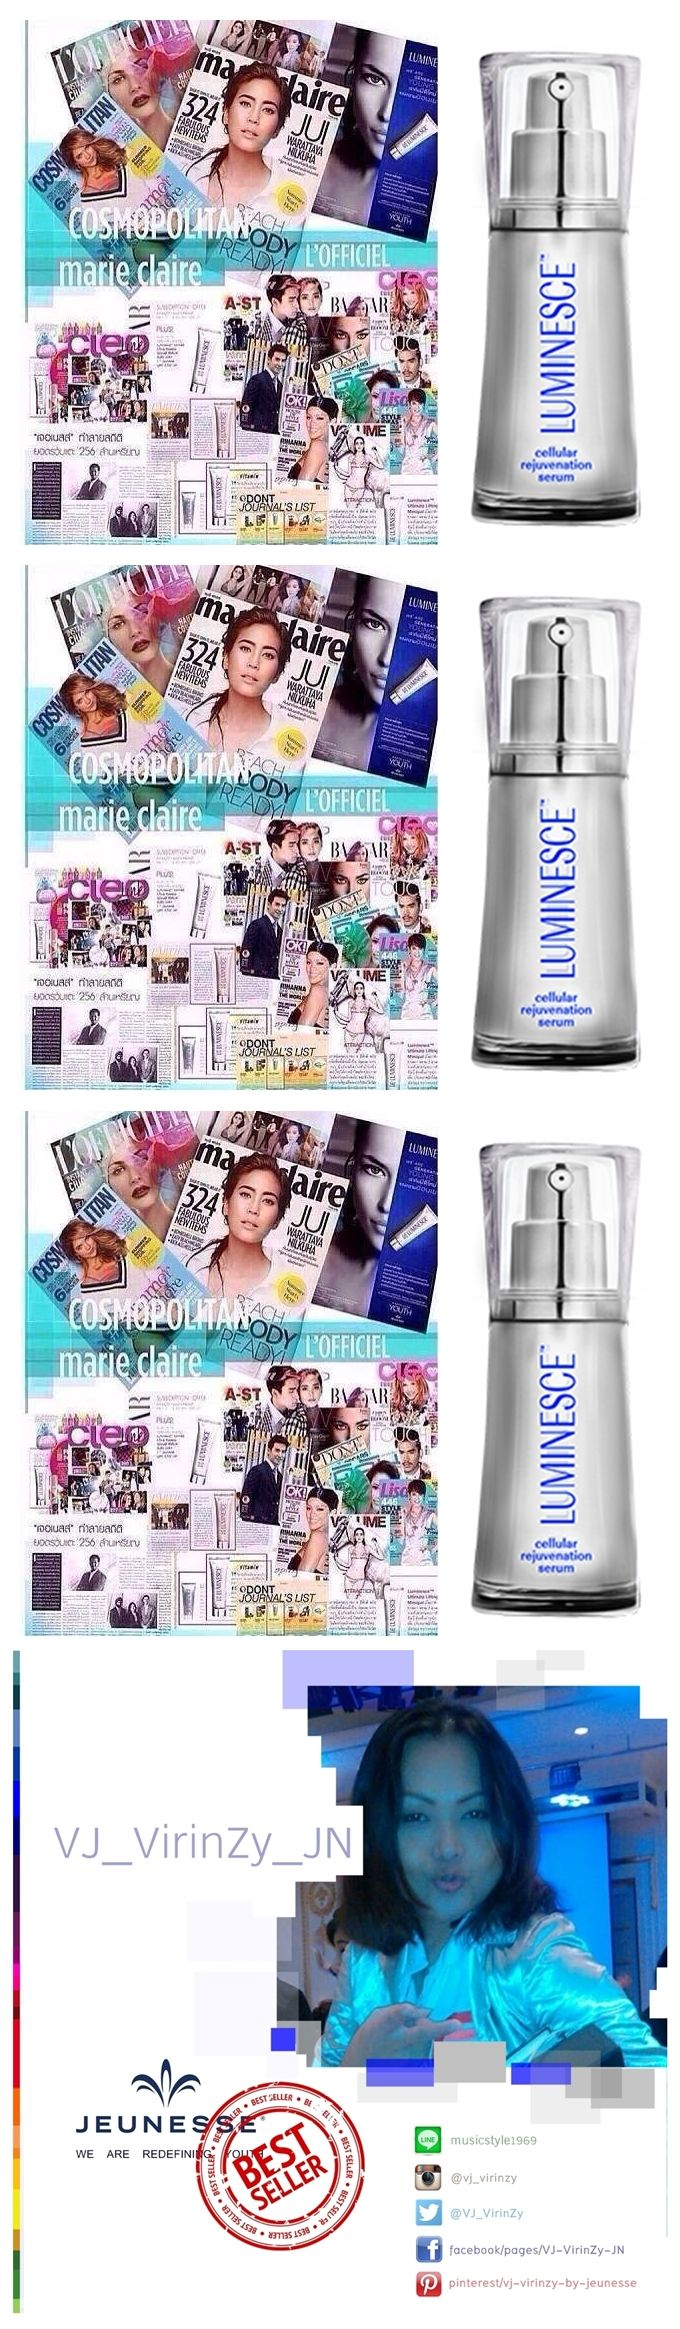 LUMINESCE CELLULAR REJUVENATION SERUM Growth factors are more than 200 types of collagen, elastin ... Skin softening fine lines and wrinkles to fade ... to rejuvenate //www.joybanfield.jeunesseglobal.com